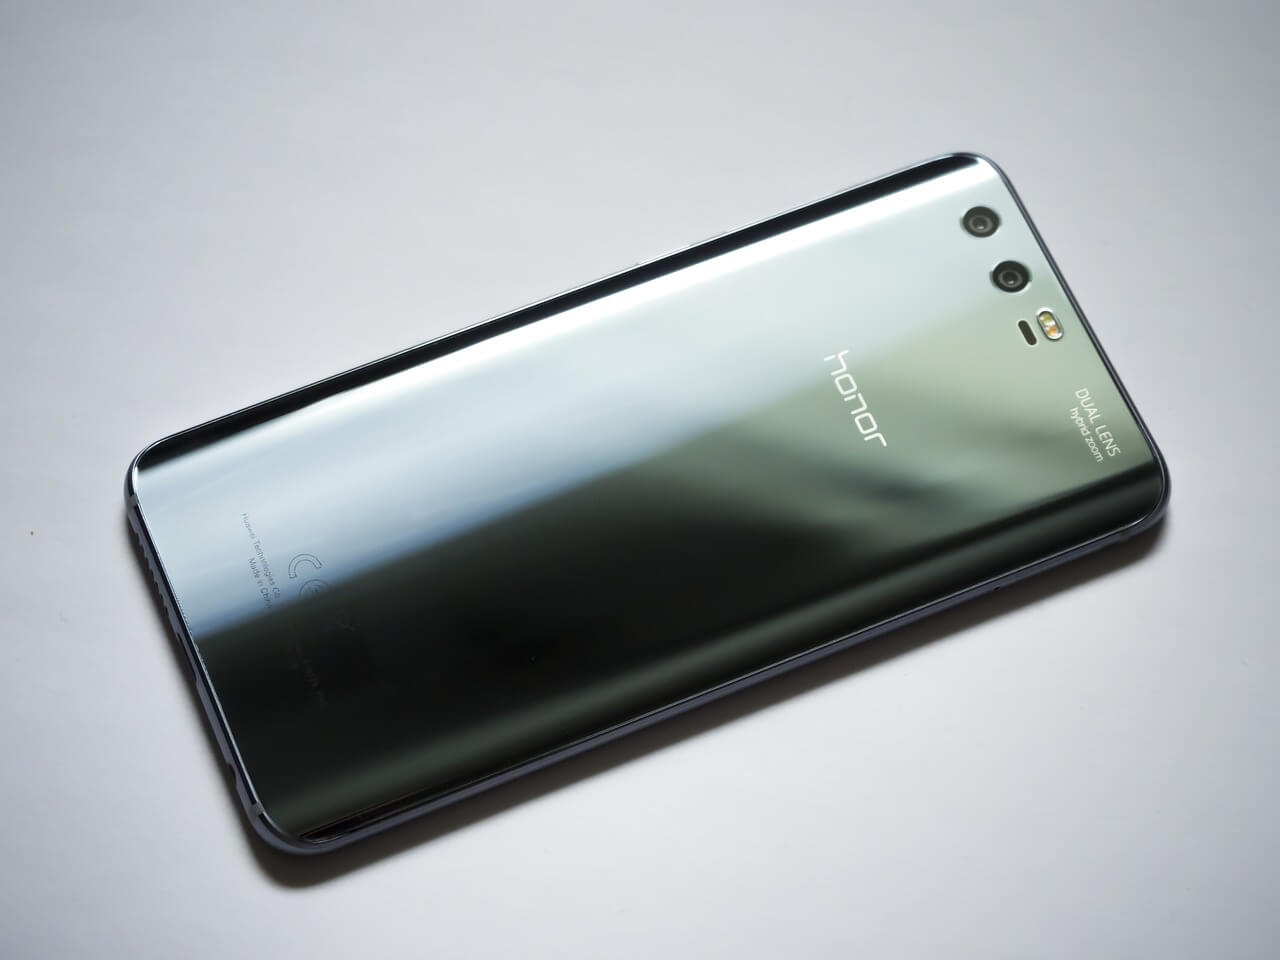 Huawei Aims To Pass Samsung And Apple, Become World's Largest Smartphone Maker In 2019